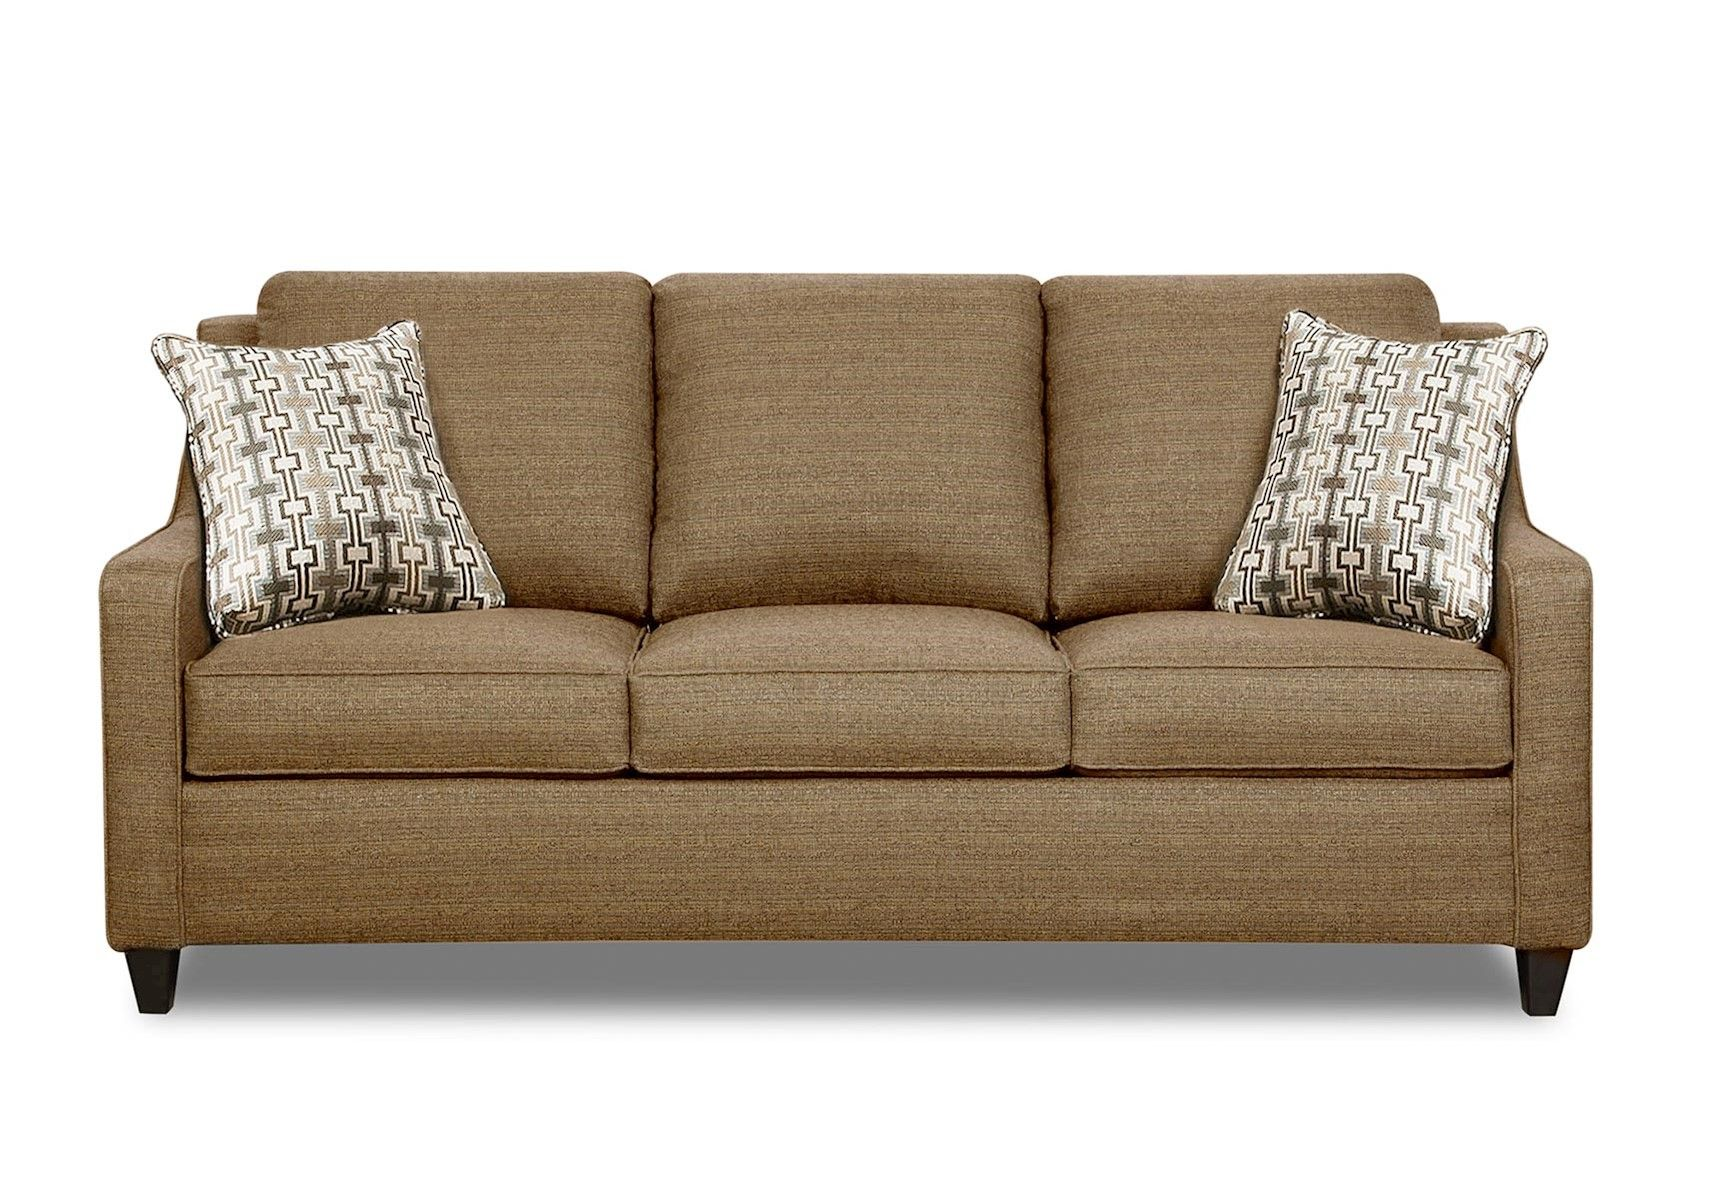 Sofas For Small Es Flexsteel Bay Bridge Sofa Price Lacks Stacia 2 Pc Living Room Set Thesofa